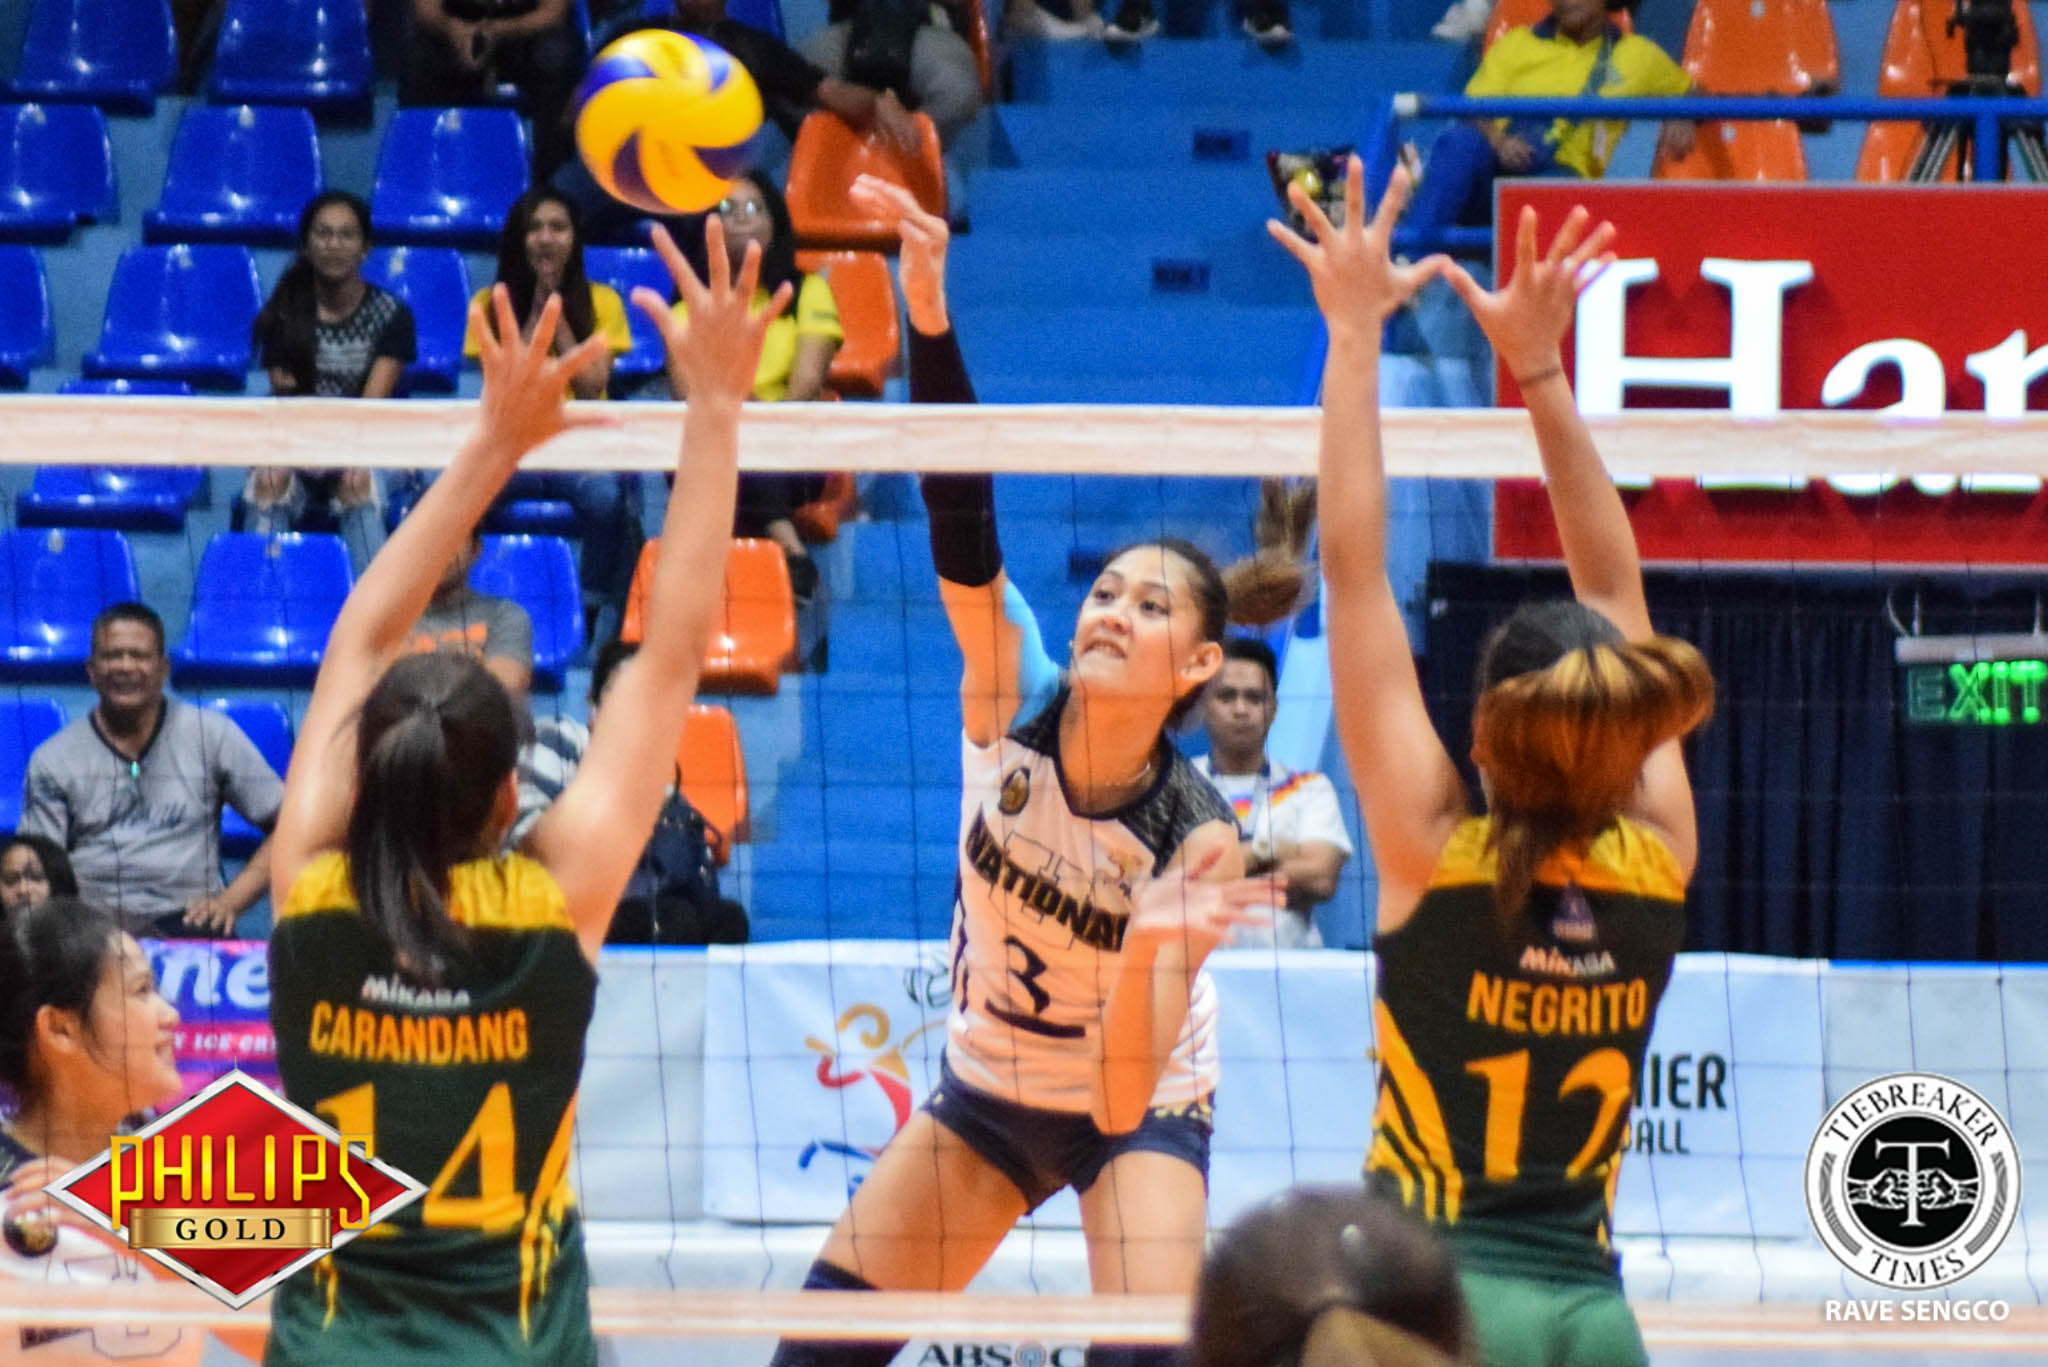 Philippine Sports News - Tiebreaker Times Three-peat in Sight: Lady Bulldogs escape Lady Tams to take Game One FEU News NU PVL Volleyball  Risa Sato NU Women's Volleyball Jeanette Villareal Jasmine Nabor Jaja Santiago George Pascua Gayle Valdez FEU Women's Volleyball Czarina Carandag Babes Castillo 2017 PVL Women's Collegiate Conference 2017 PVL Season